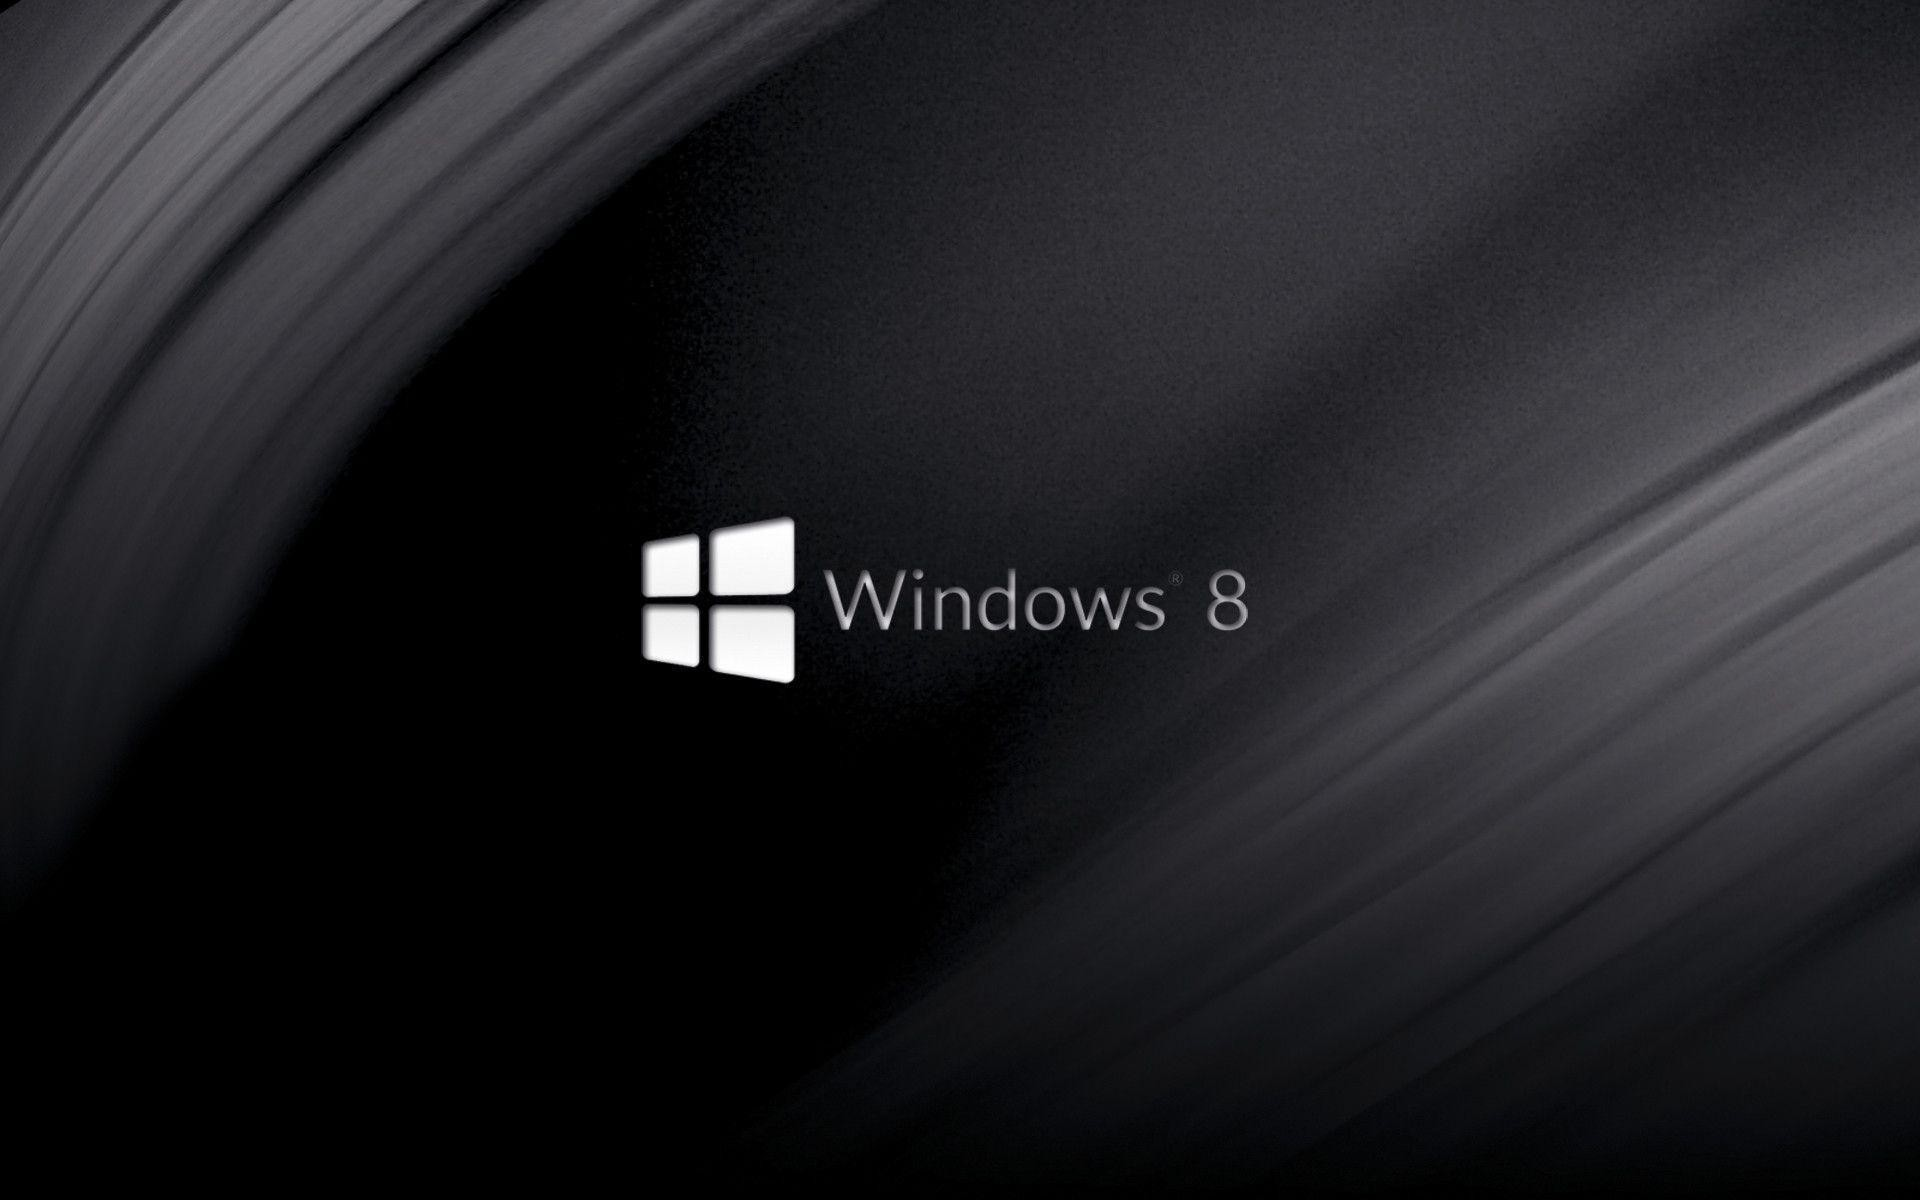 windows 8.1 wallpaper hd 3d for desktop